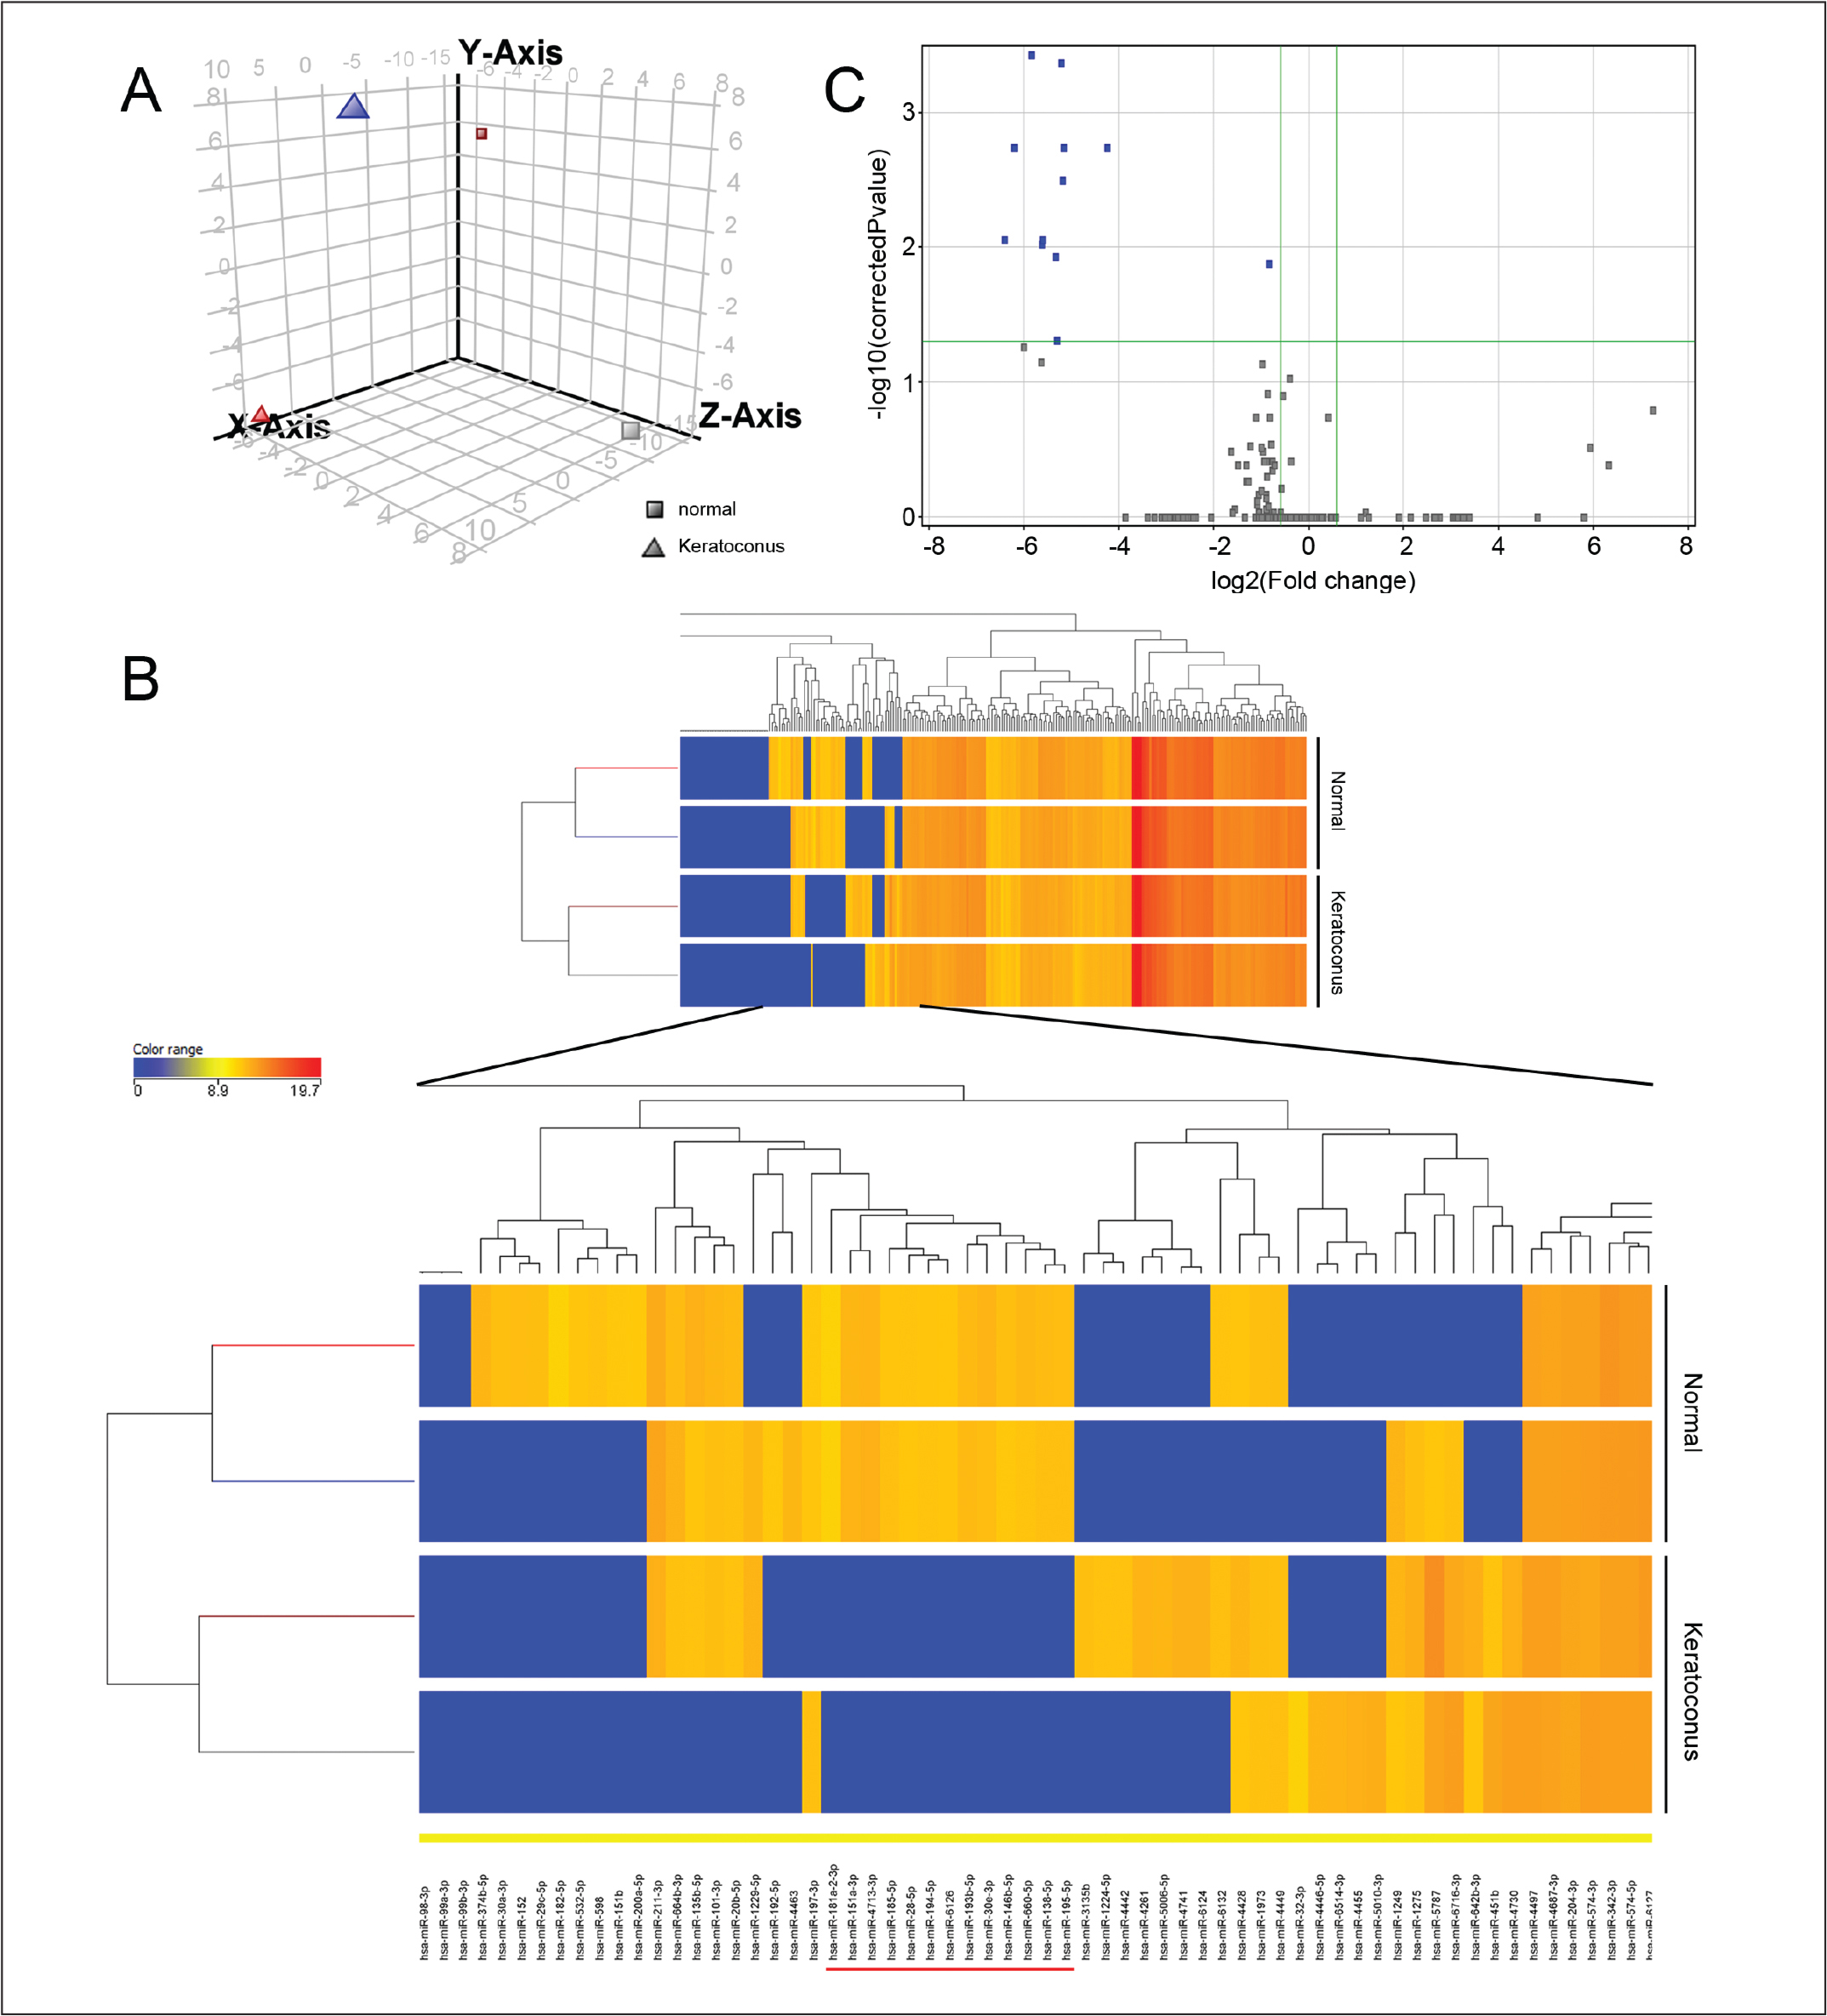 The micro-ribonucleic acid (miRNA) microarray profiling of keratoconic corneal epithelia. (A) Principle component analysis of miRNA profiles. Square: normal; Triangle: keratoconus. (B) Hierarchical clustering of normal and keratoconic corneal epithelial miRNA profiles. (C) Volcano plot identified 12 differentially expression miRNAs (blue; > 1.5 fold change and corrected P < .05).